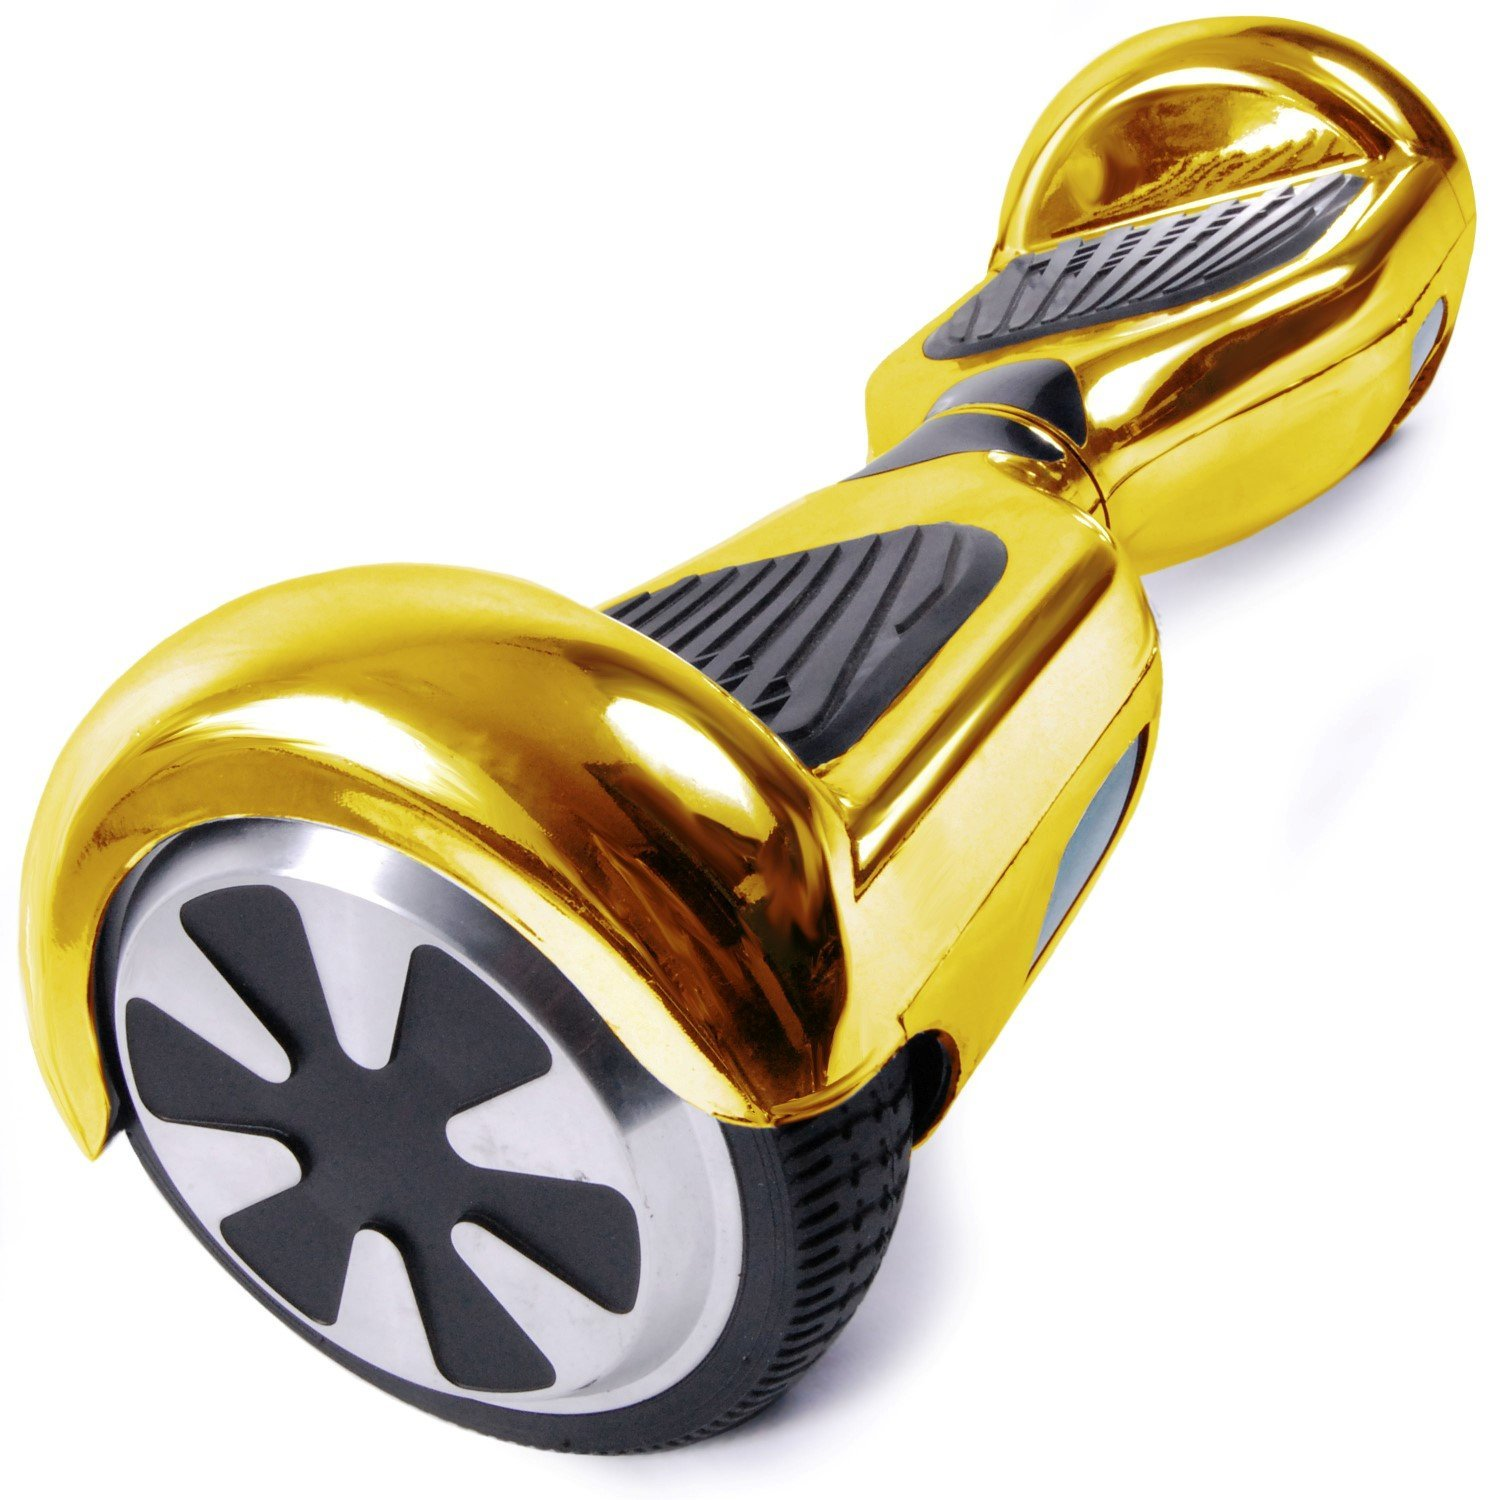 Powerboard Hoverboard Review Hands Free Segway Reviews